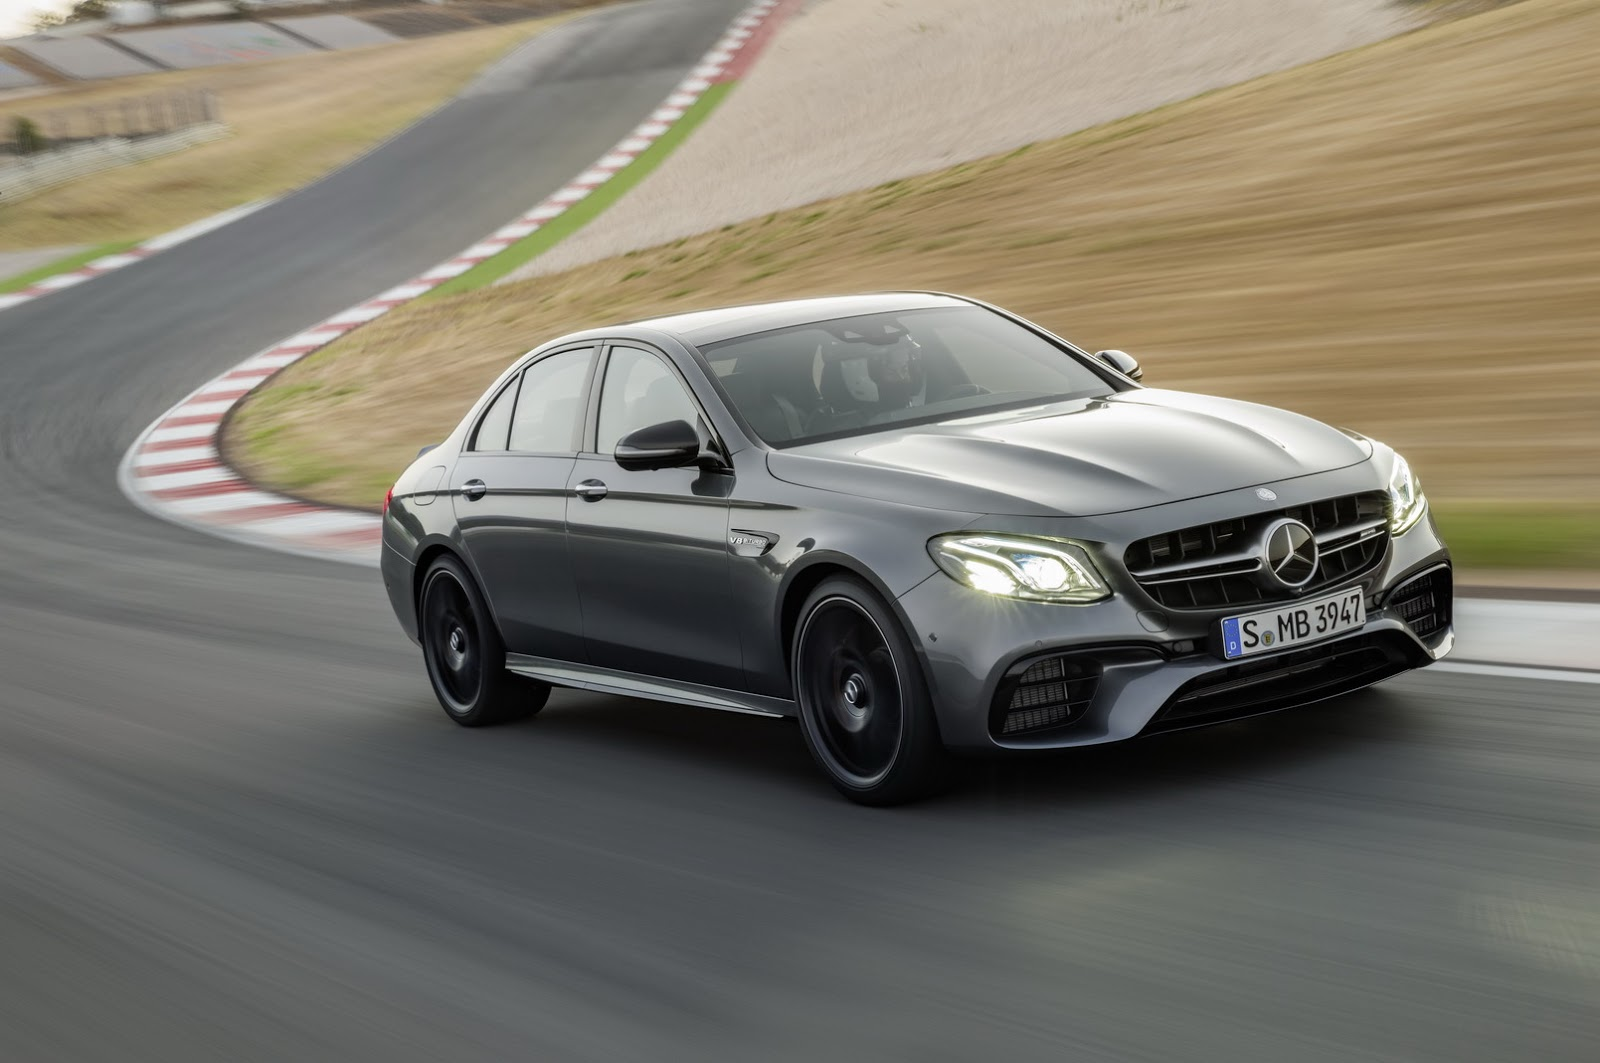 2018 mercedes amg e63 e63 s get up to 603hp hit 62mph for Mercedes benz e 63 amg